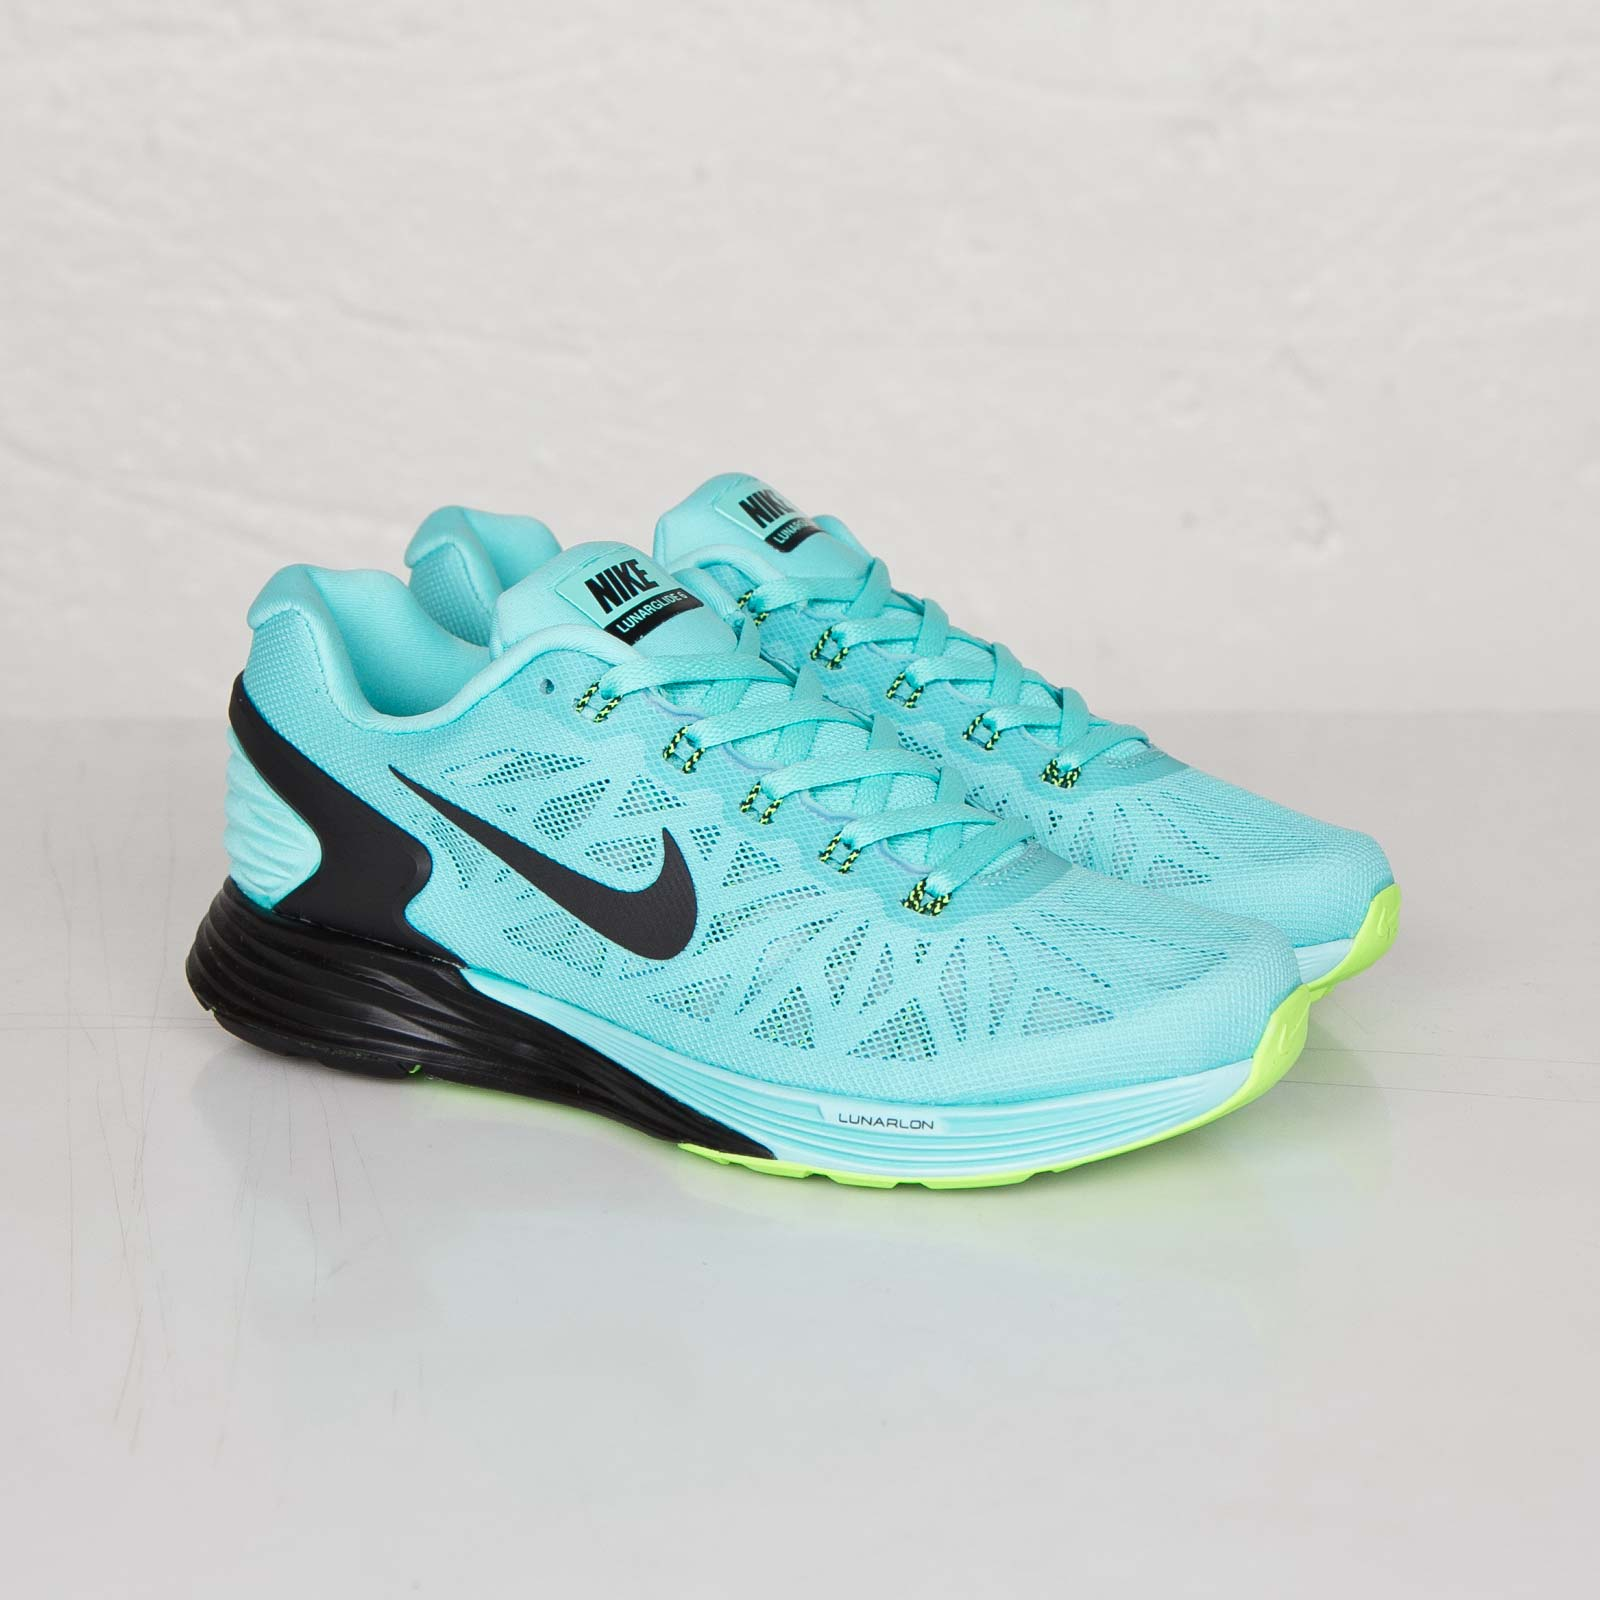 huge selection of 50708 99a8b Nike Wmns Lunarglide 6 - 654434-403 - Sneakersnstuff ...